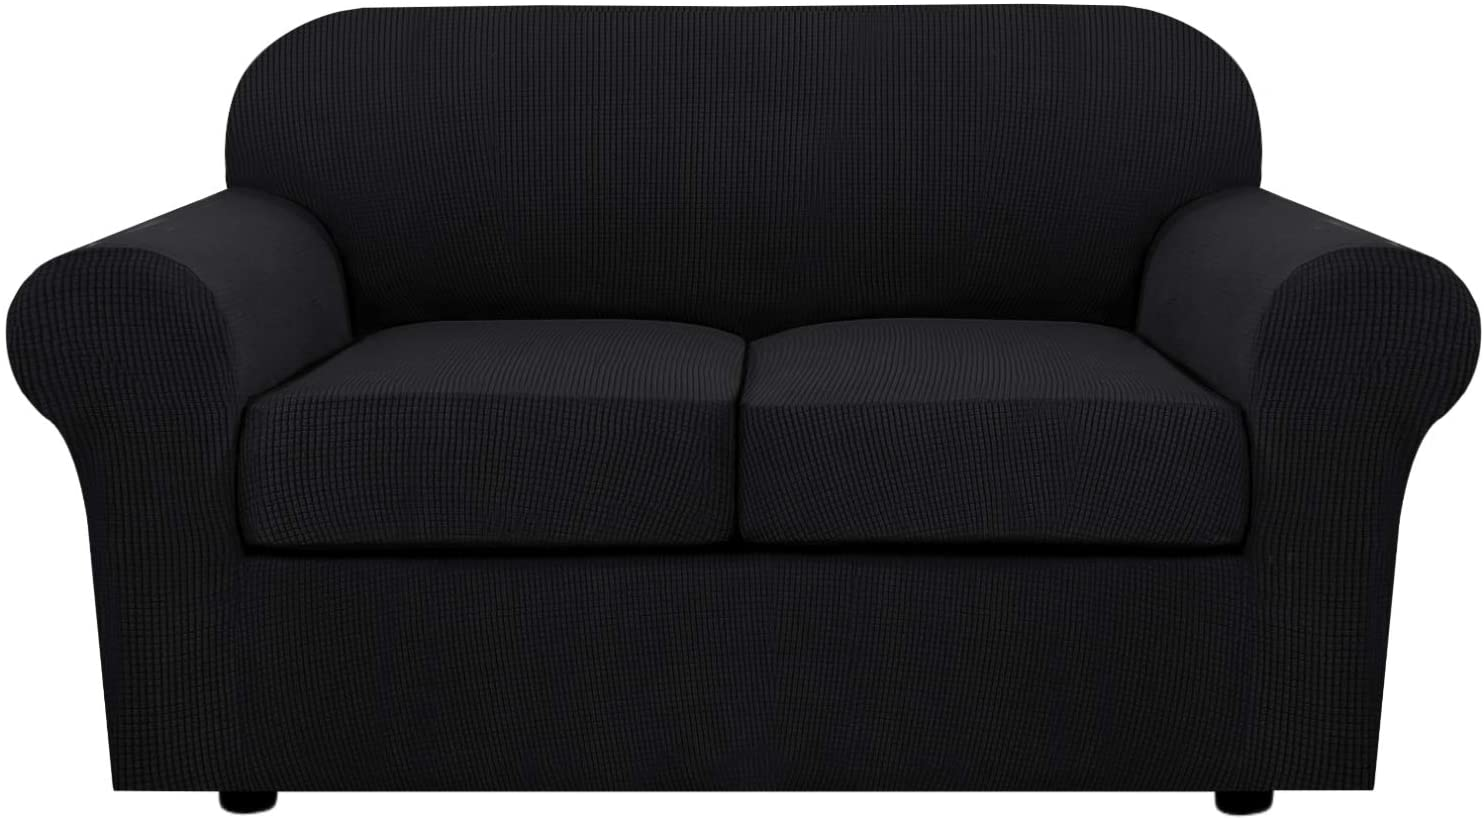 3 Piece Stretch Sofa Covers for 2 Cushion Couch Loveseat Covers for Living Furniture Slipcovers (Base Cover Plus 2 Seat Cushion Covers) Feature Upgraded Thicker Jacquard Fabric (Loveseat, Black)